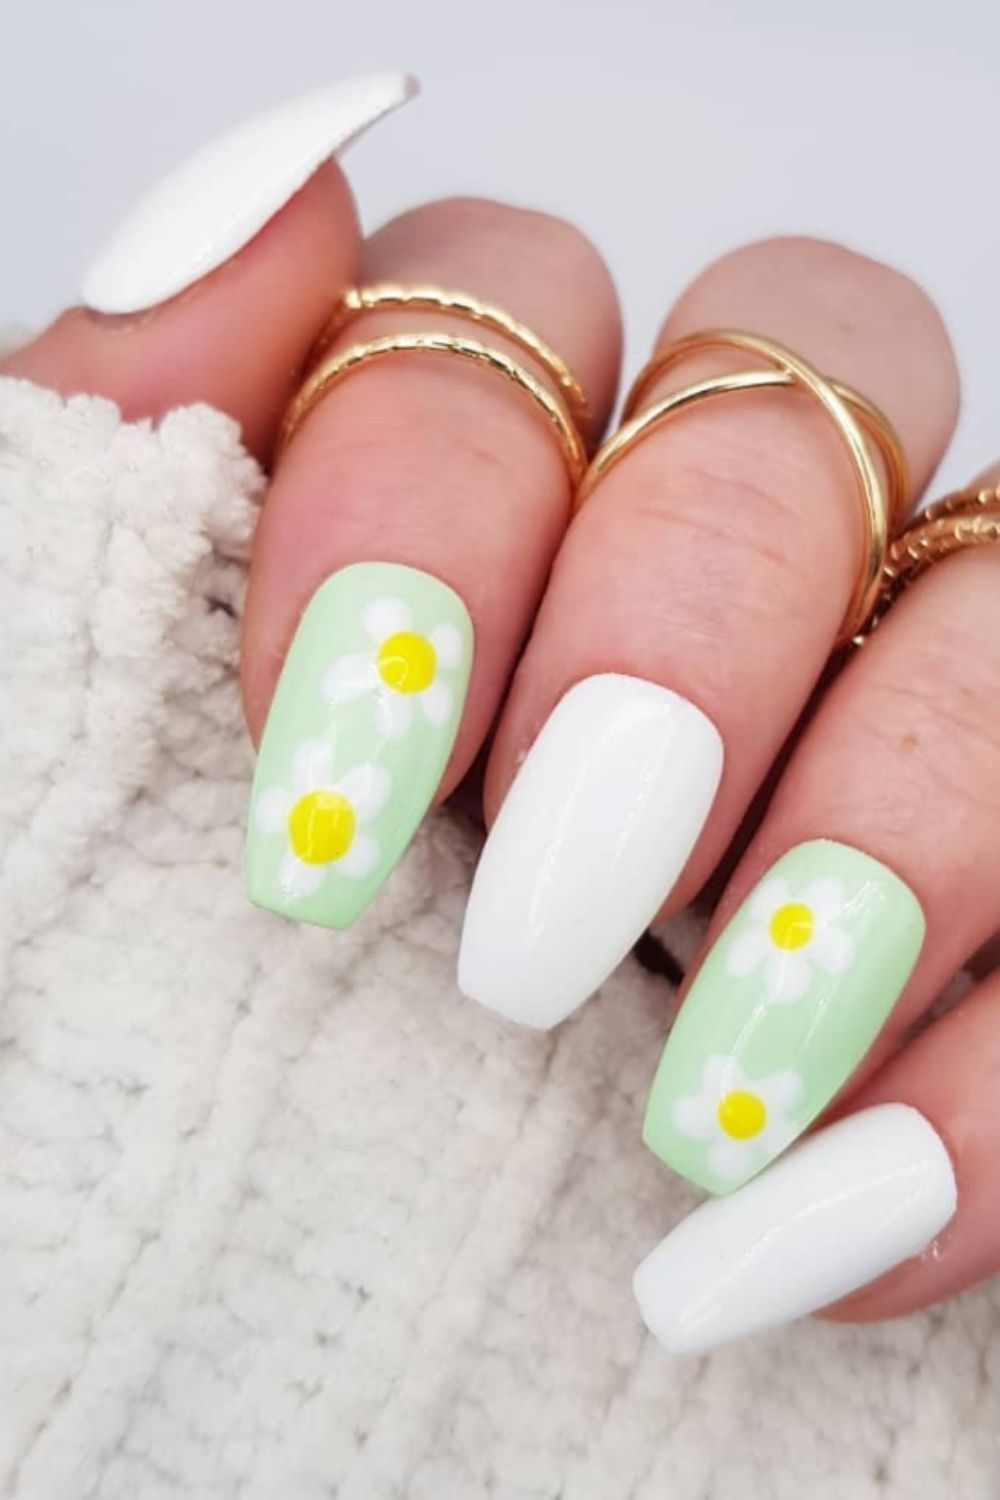 Elegant White Nail Design To Try For A Party In 2021!